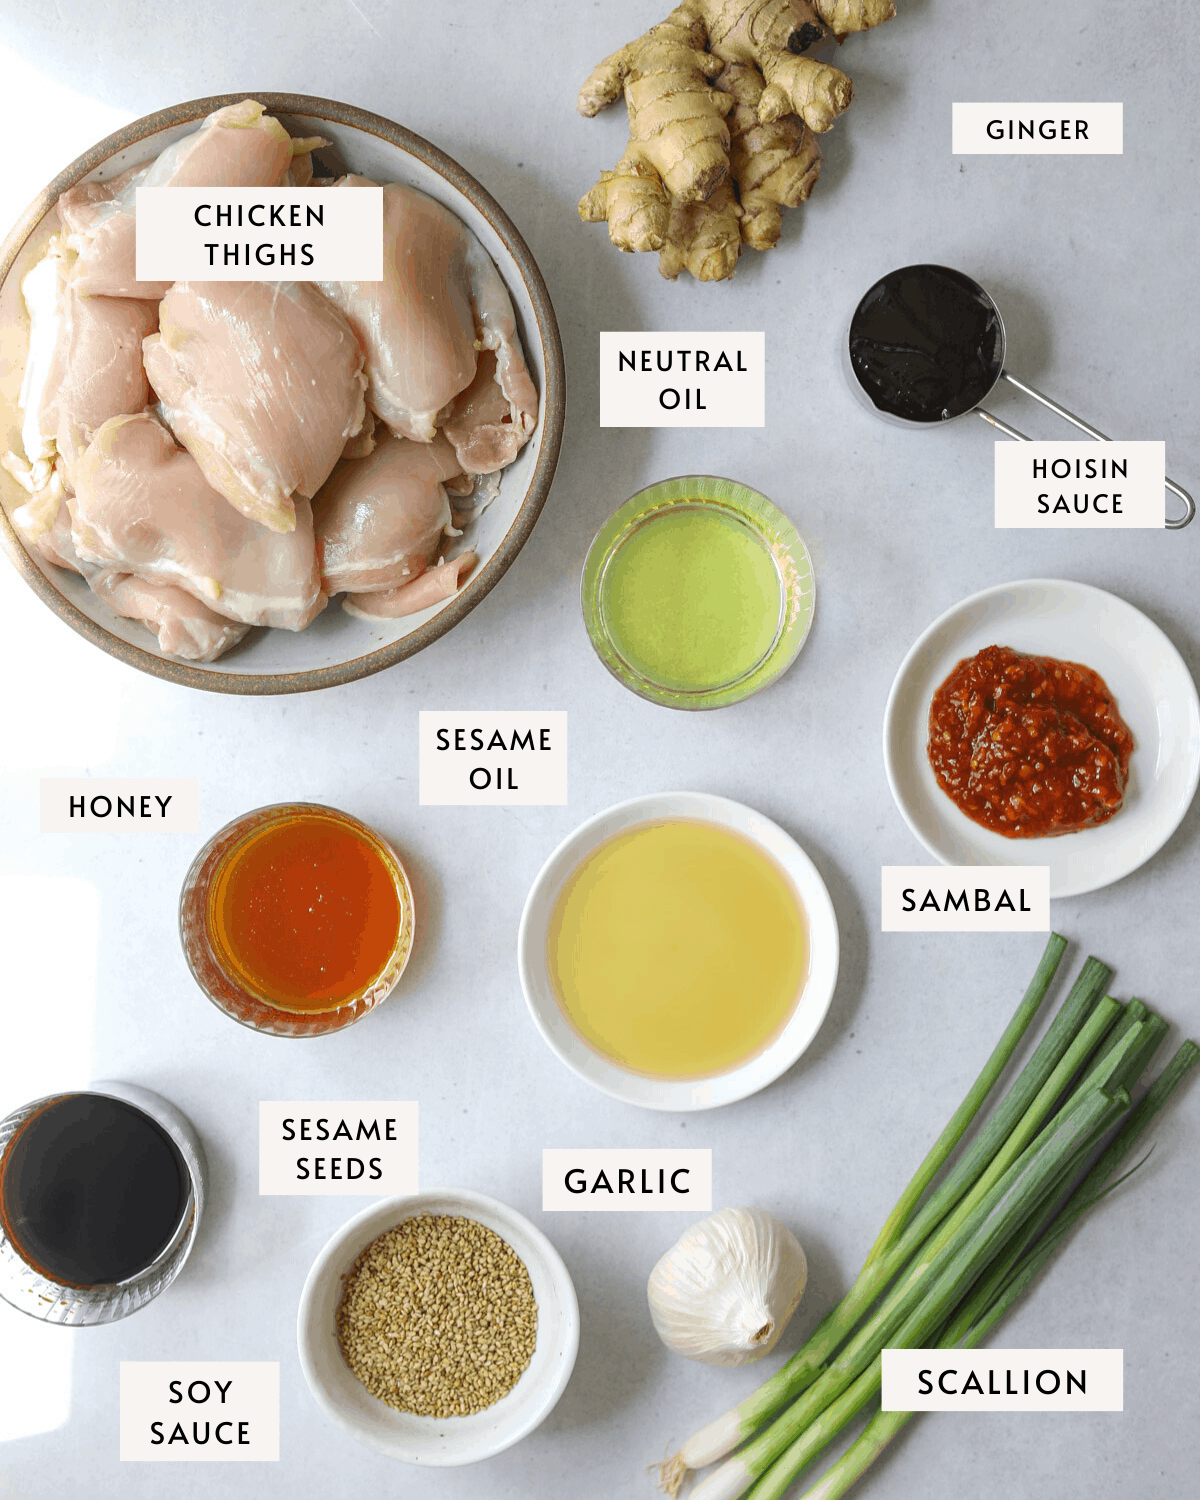 Recipe ingredients individually portioned and labeled, chicken thighs, soy sauce, garlic, ginger, scallions, honey etc.